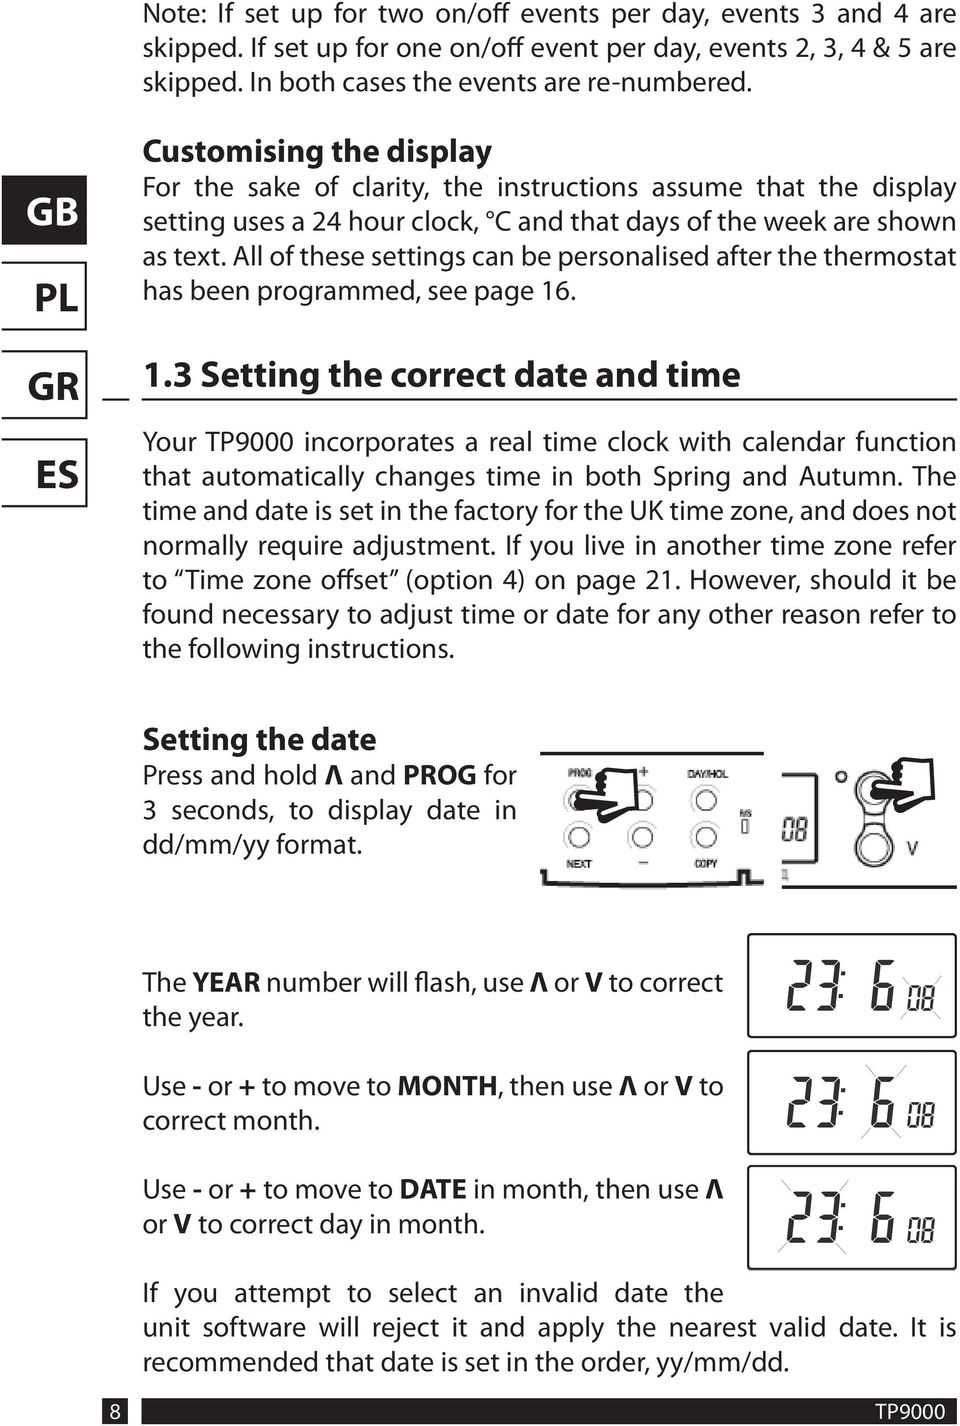 All of these settings can be personalised after the thermostat has been programmed, see page 16